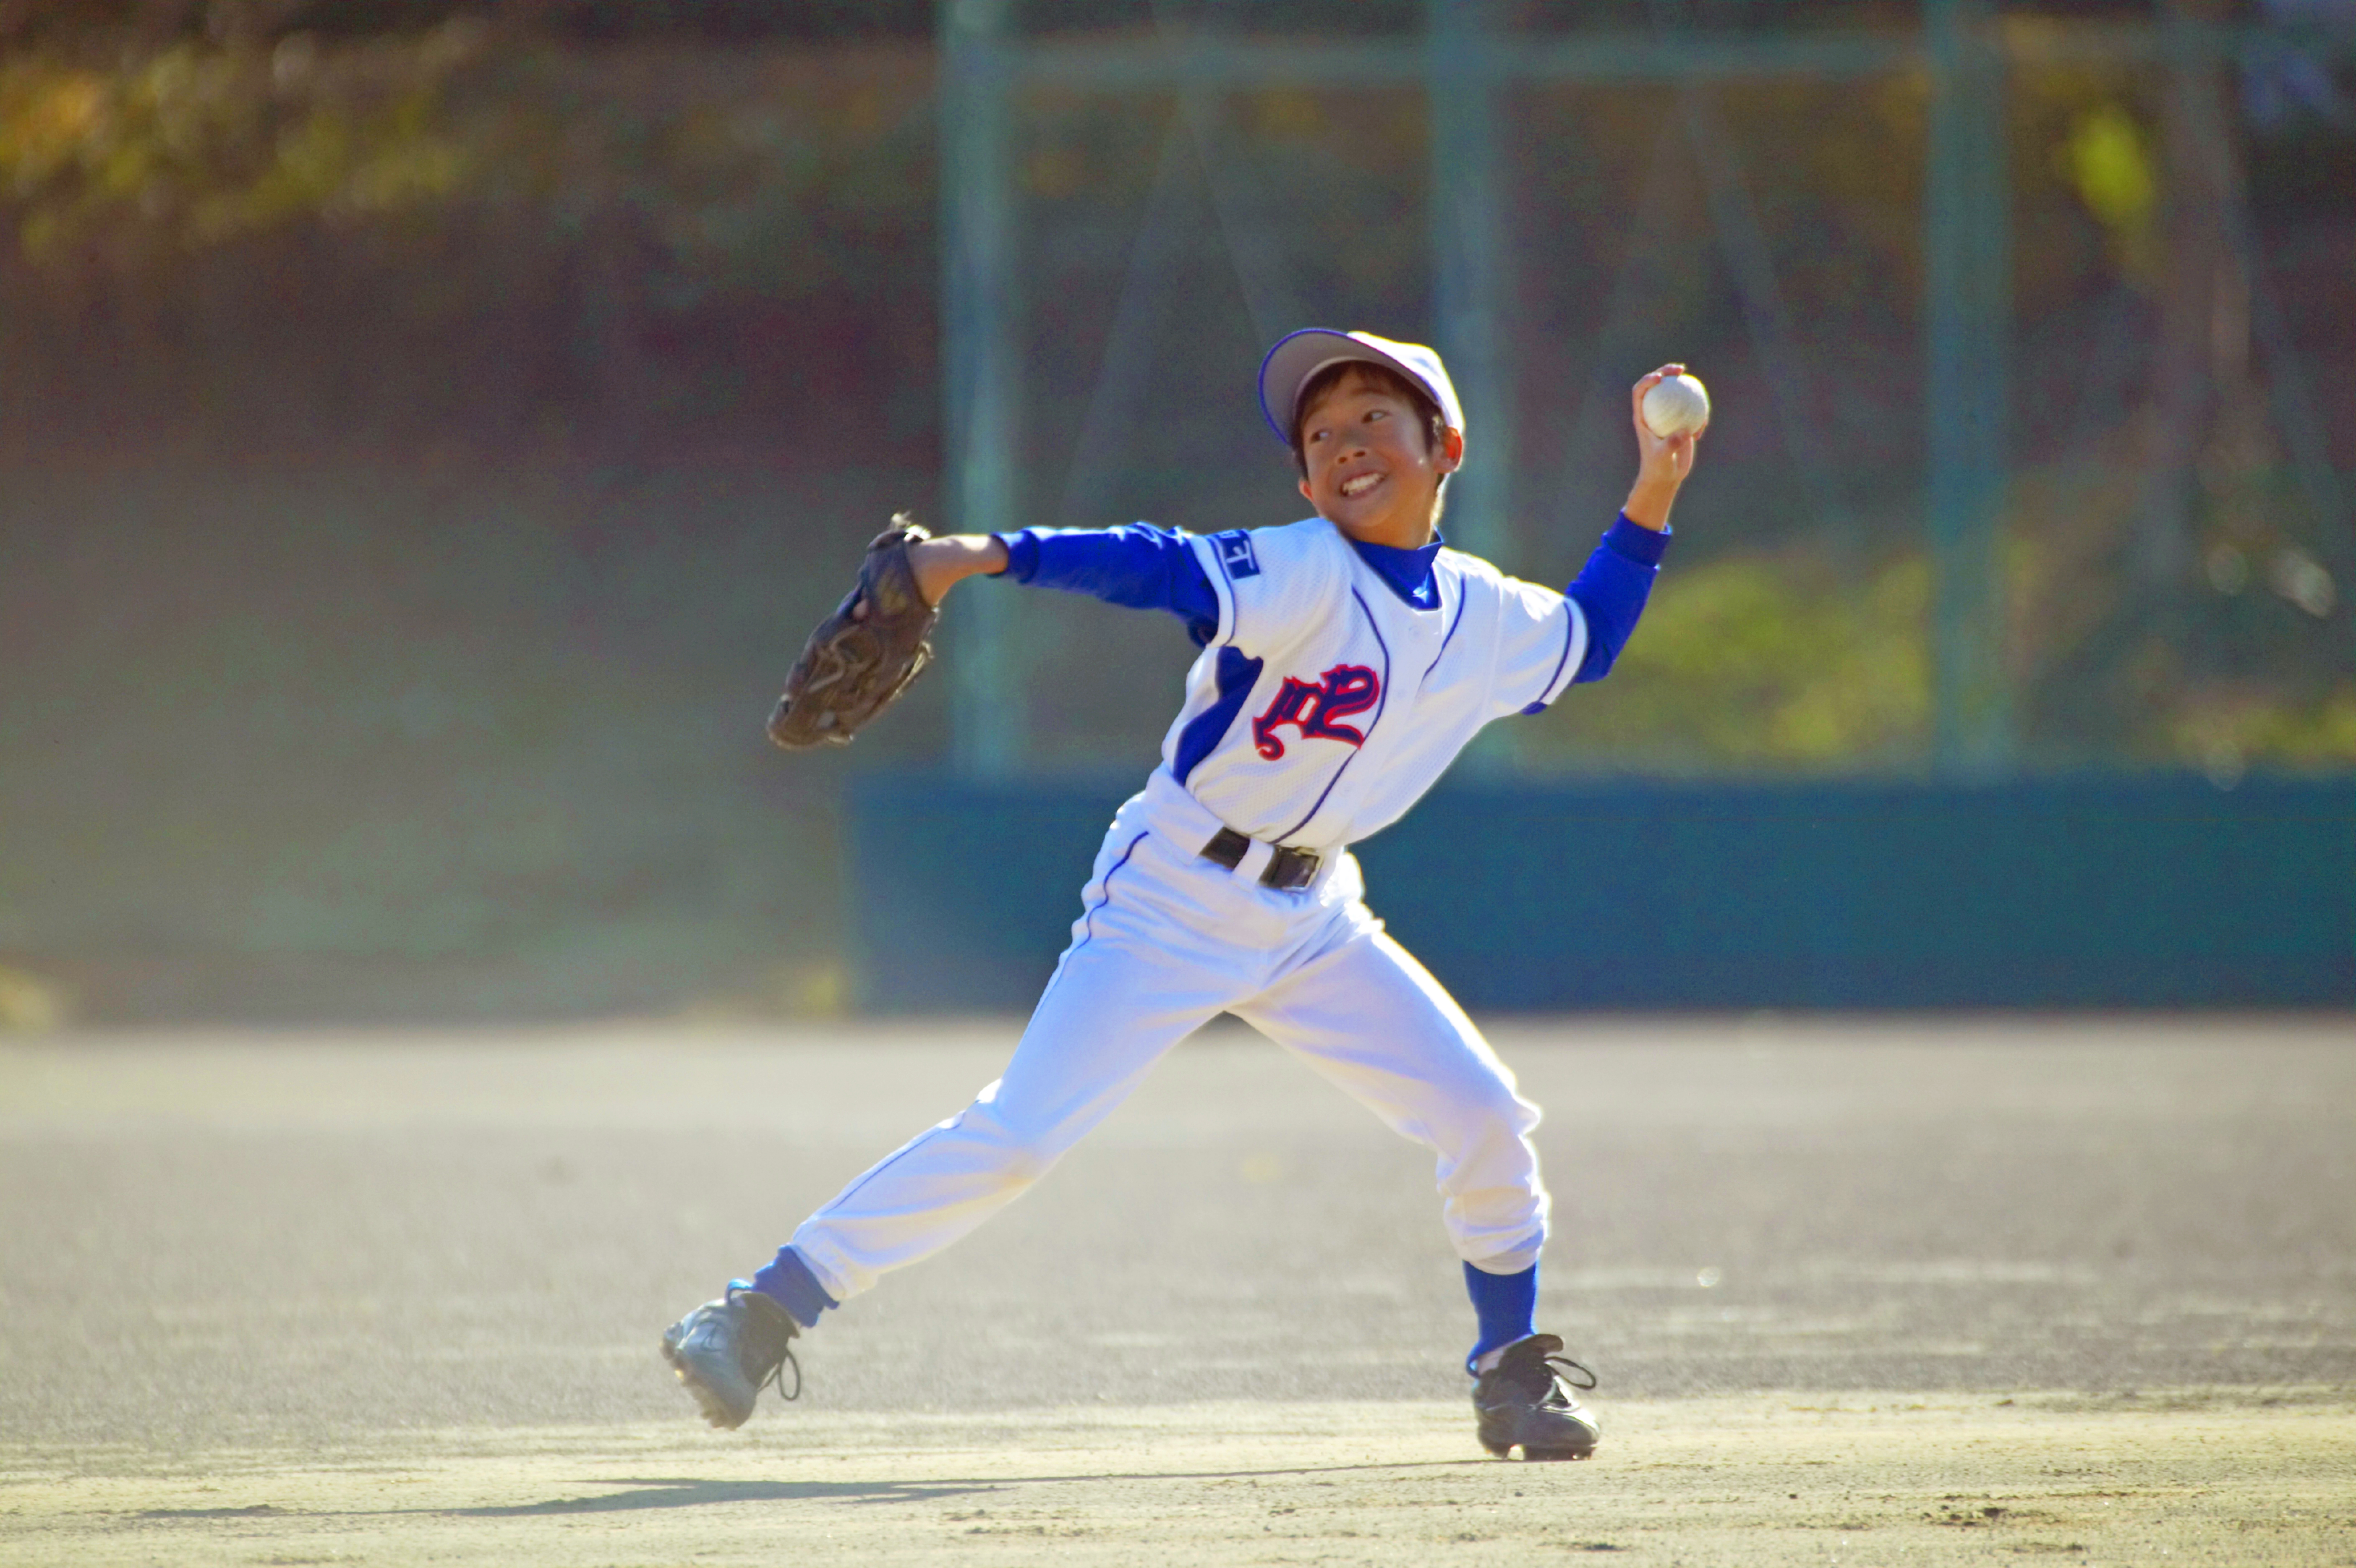 Shoulder injuries found in young baseball pitchers are similar to shoulder injuries found in volleyball players, says J. Lee Pace, MD, director of Sports Medicine, Children's Orthopaedic Center at Children's Hospital Los Angeles. (Photo: Business Wire)